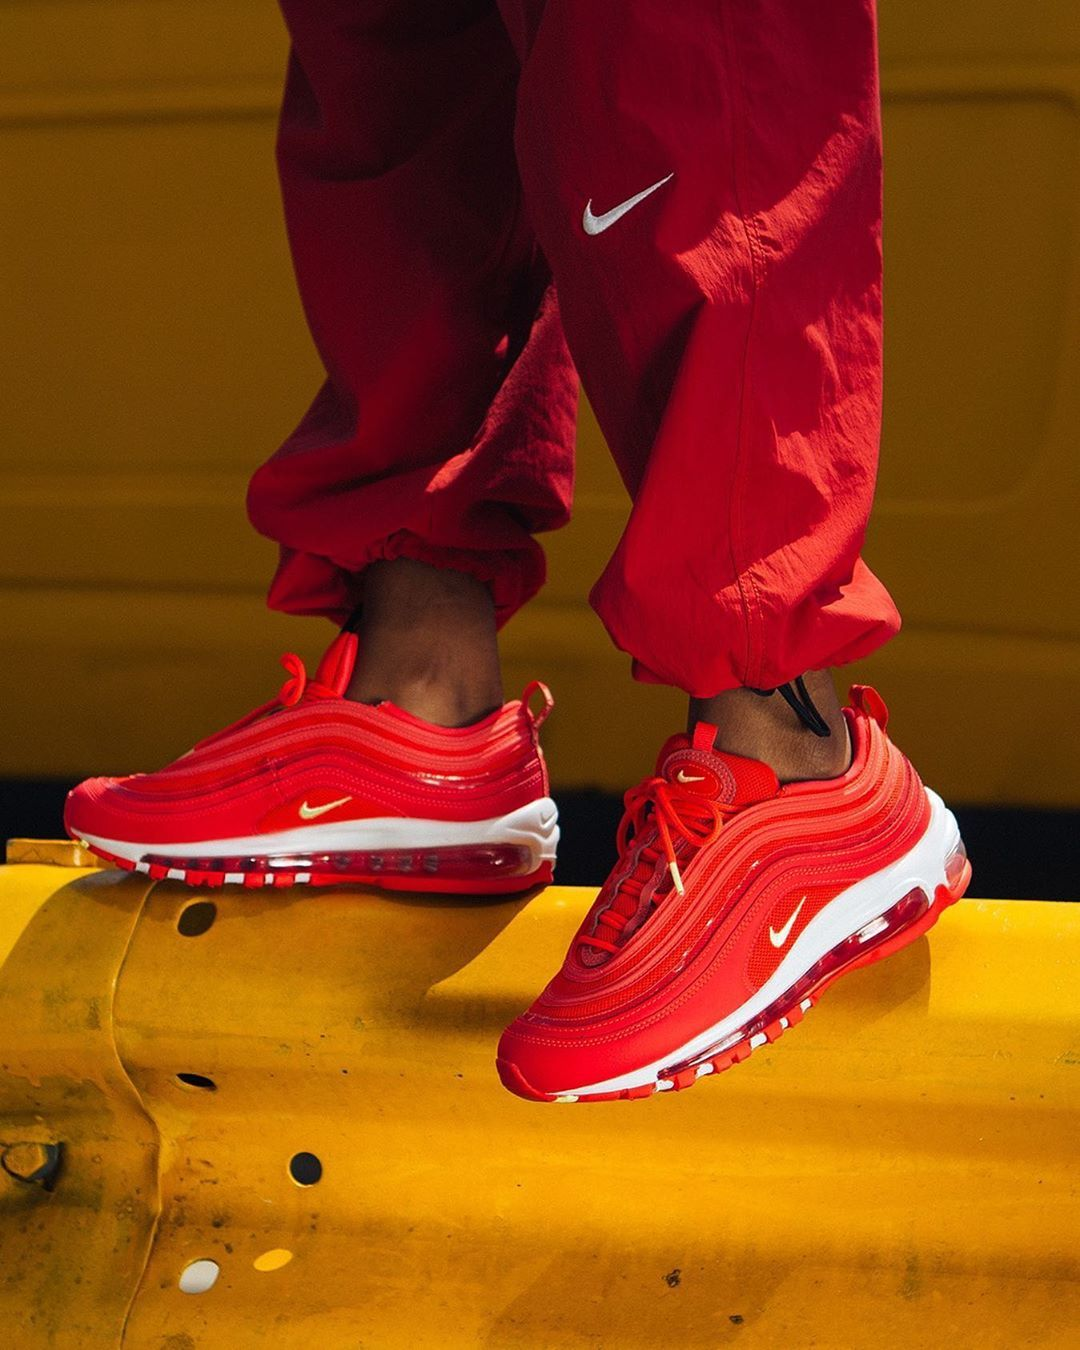 The NIKE WMNS AIR MAX 97 RED ORBIT sets itself apart from